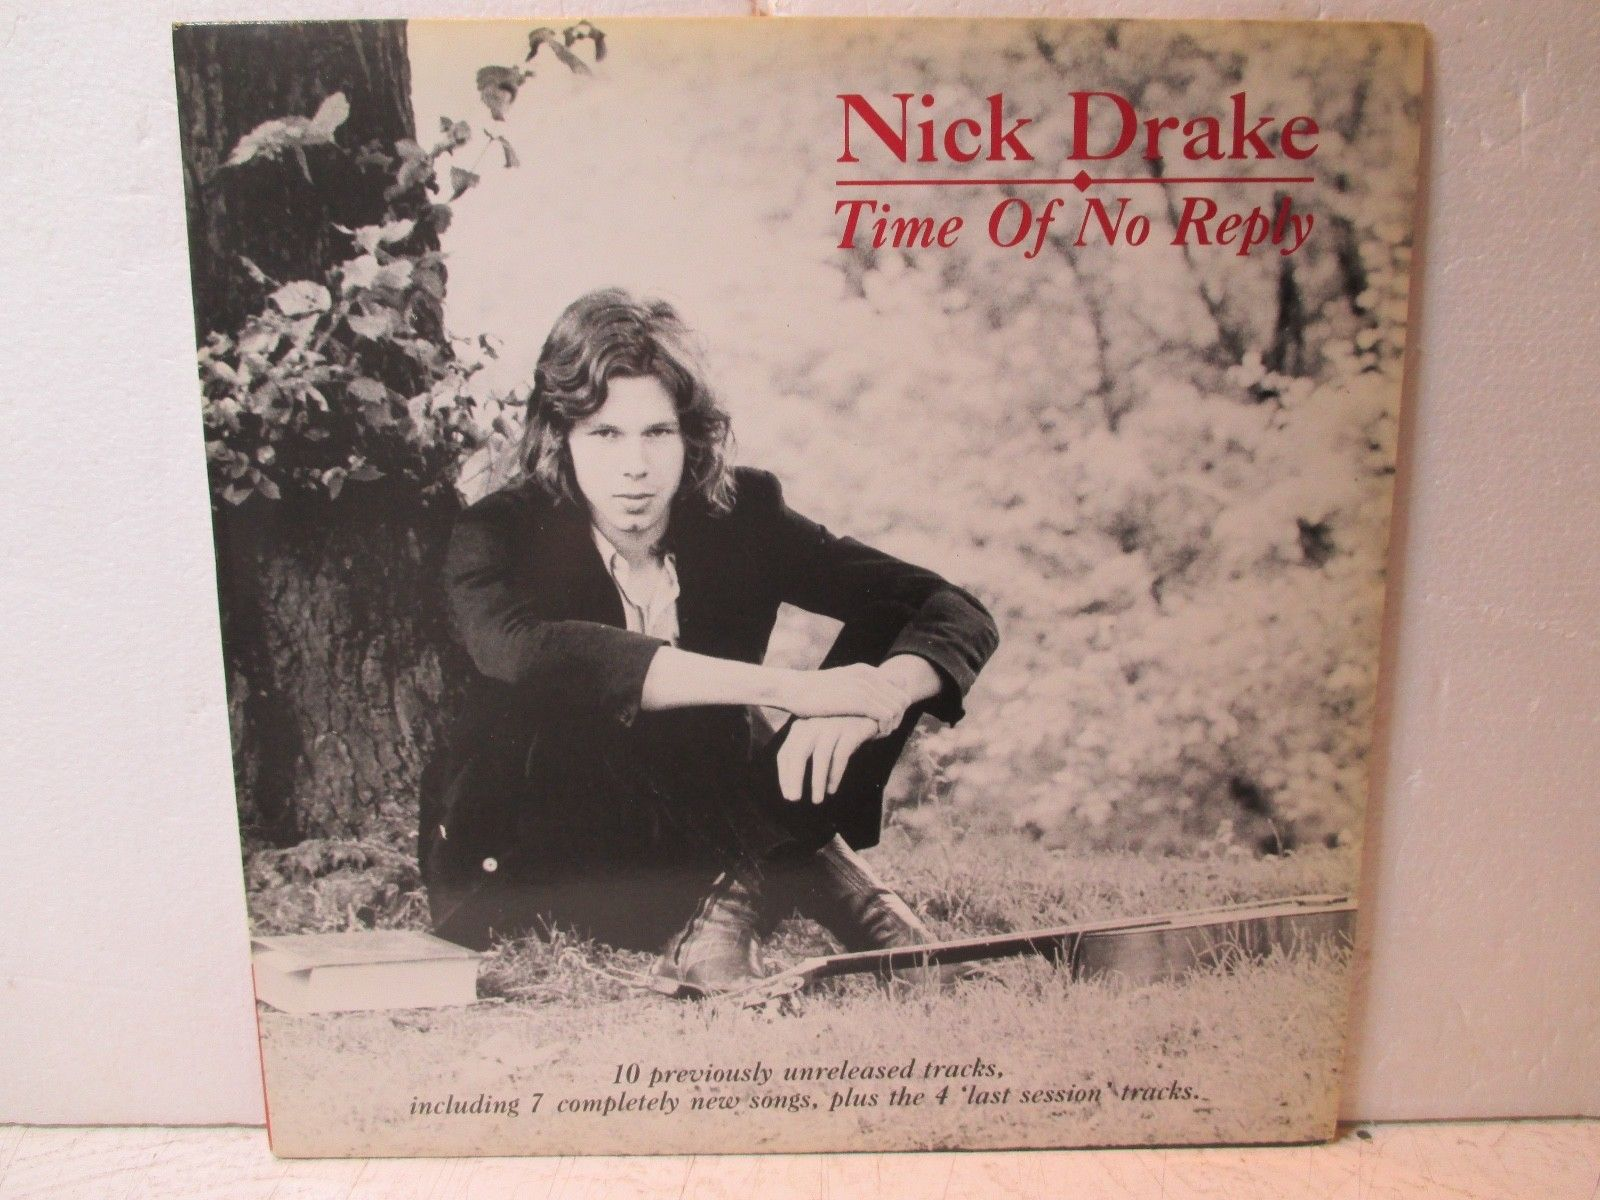 NICK DRAKE Time Of No Reply LP Hannibal 1st press nico fairport cale VG+